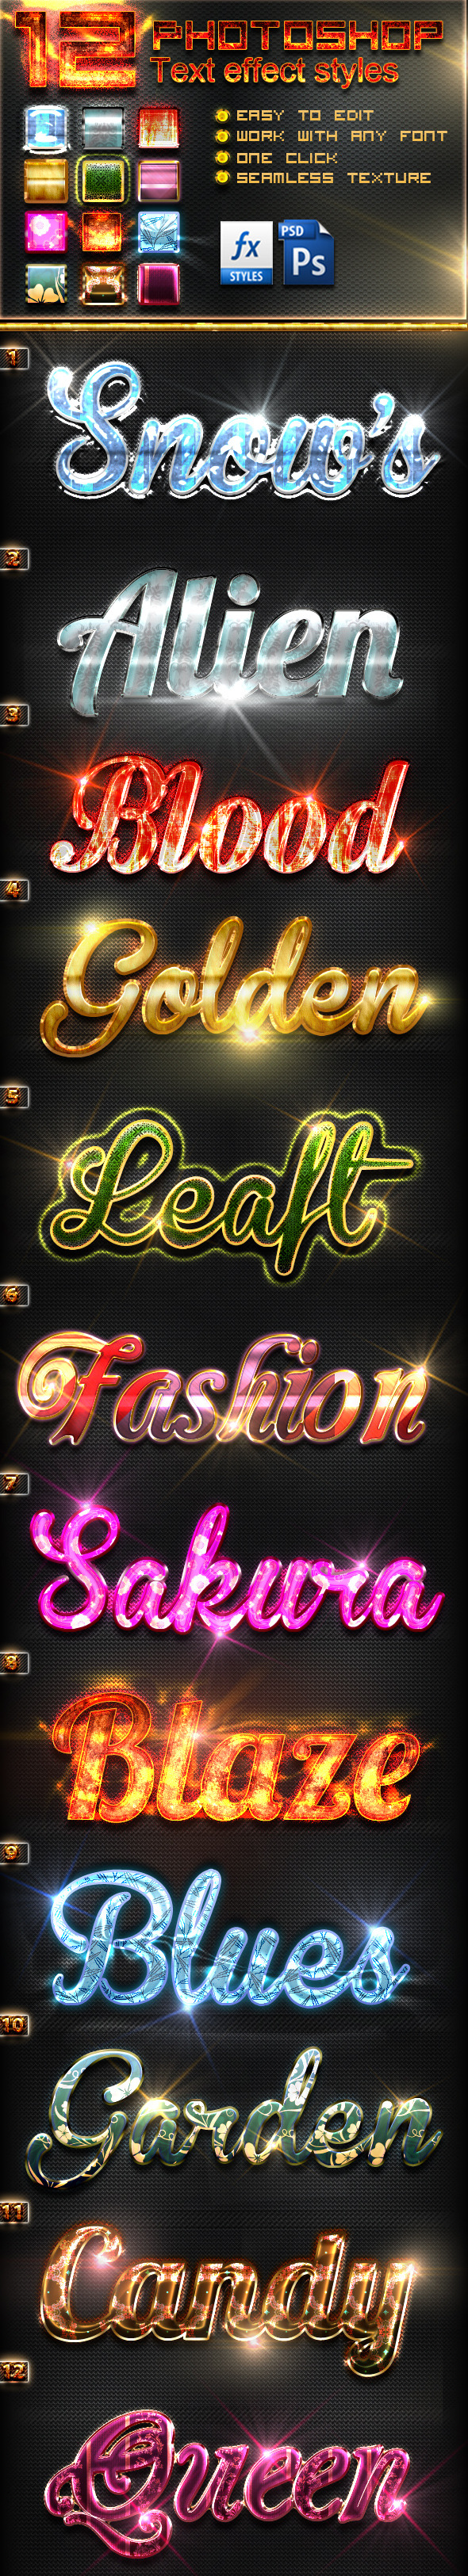 12 Photoshop Text Effect Styles Vol 14 - Text Effects Styles